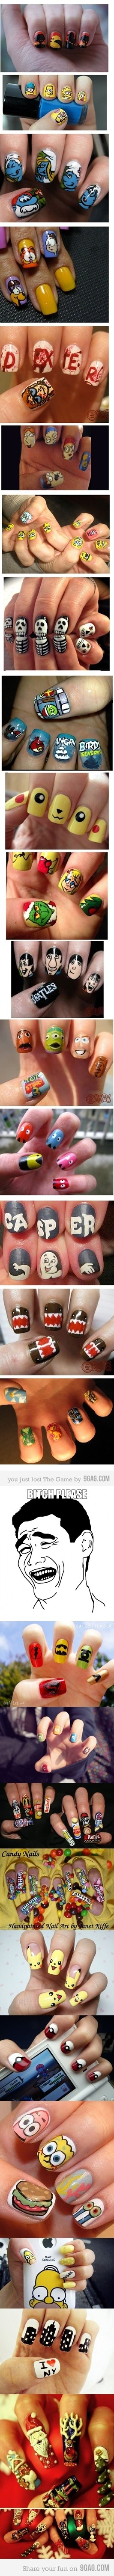 Awesome nail art is awesome!